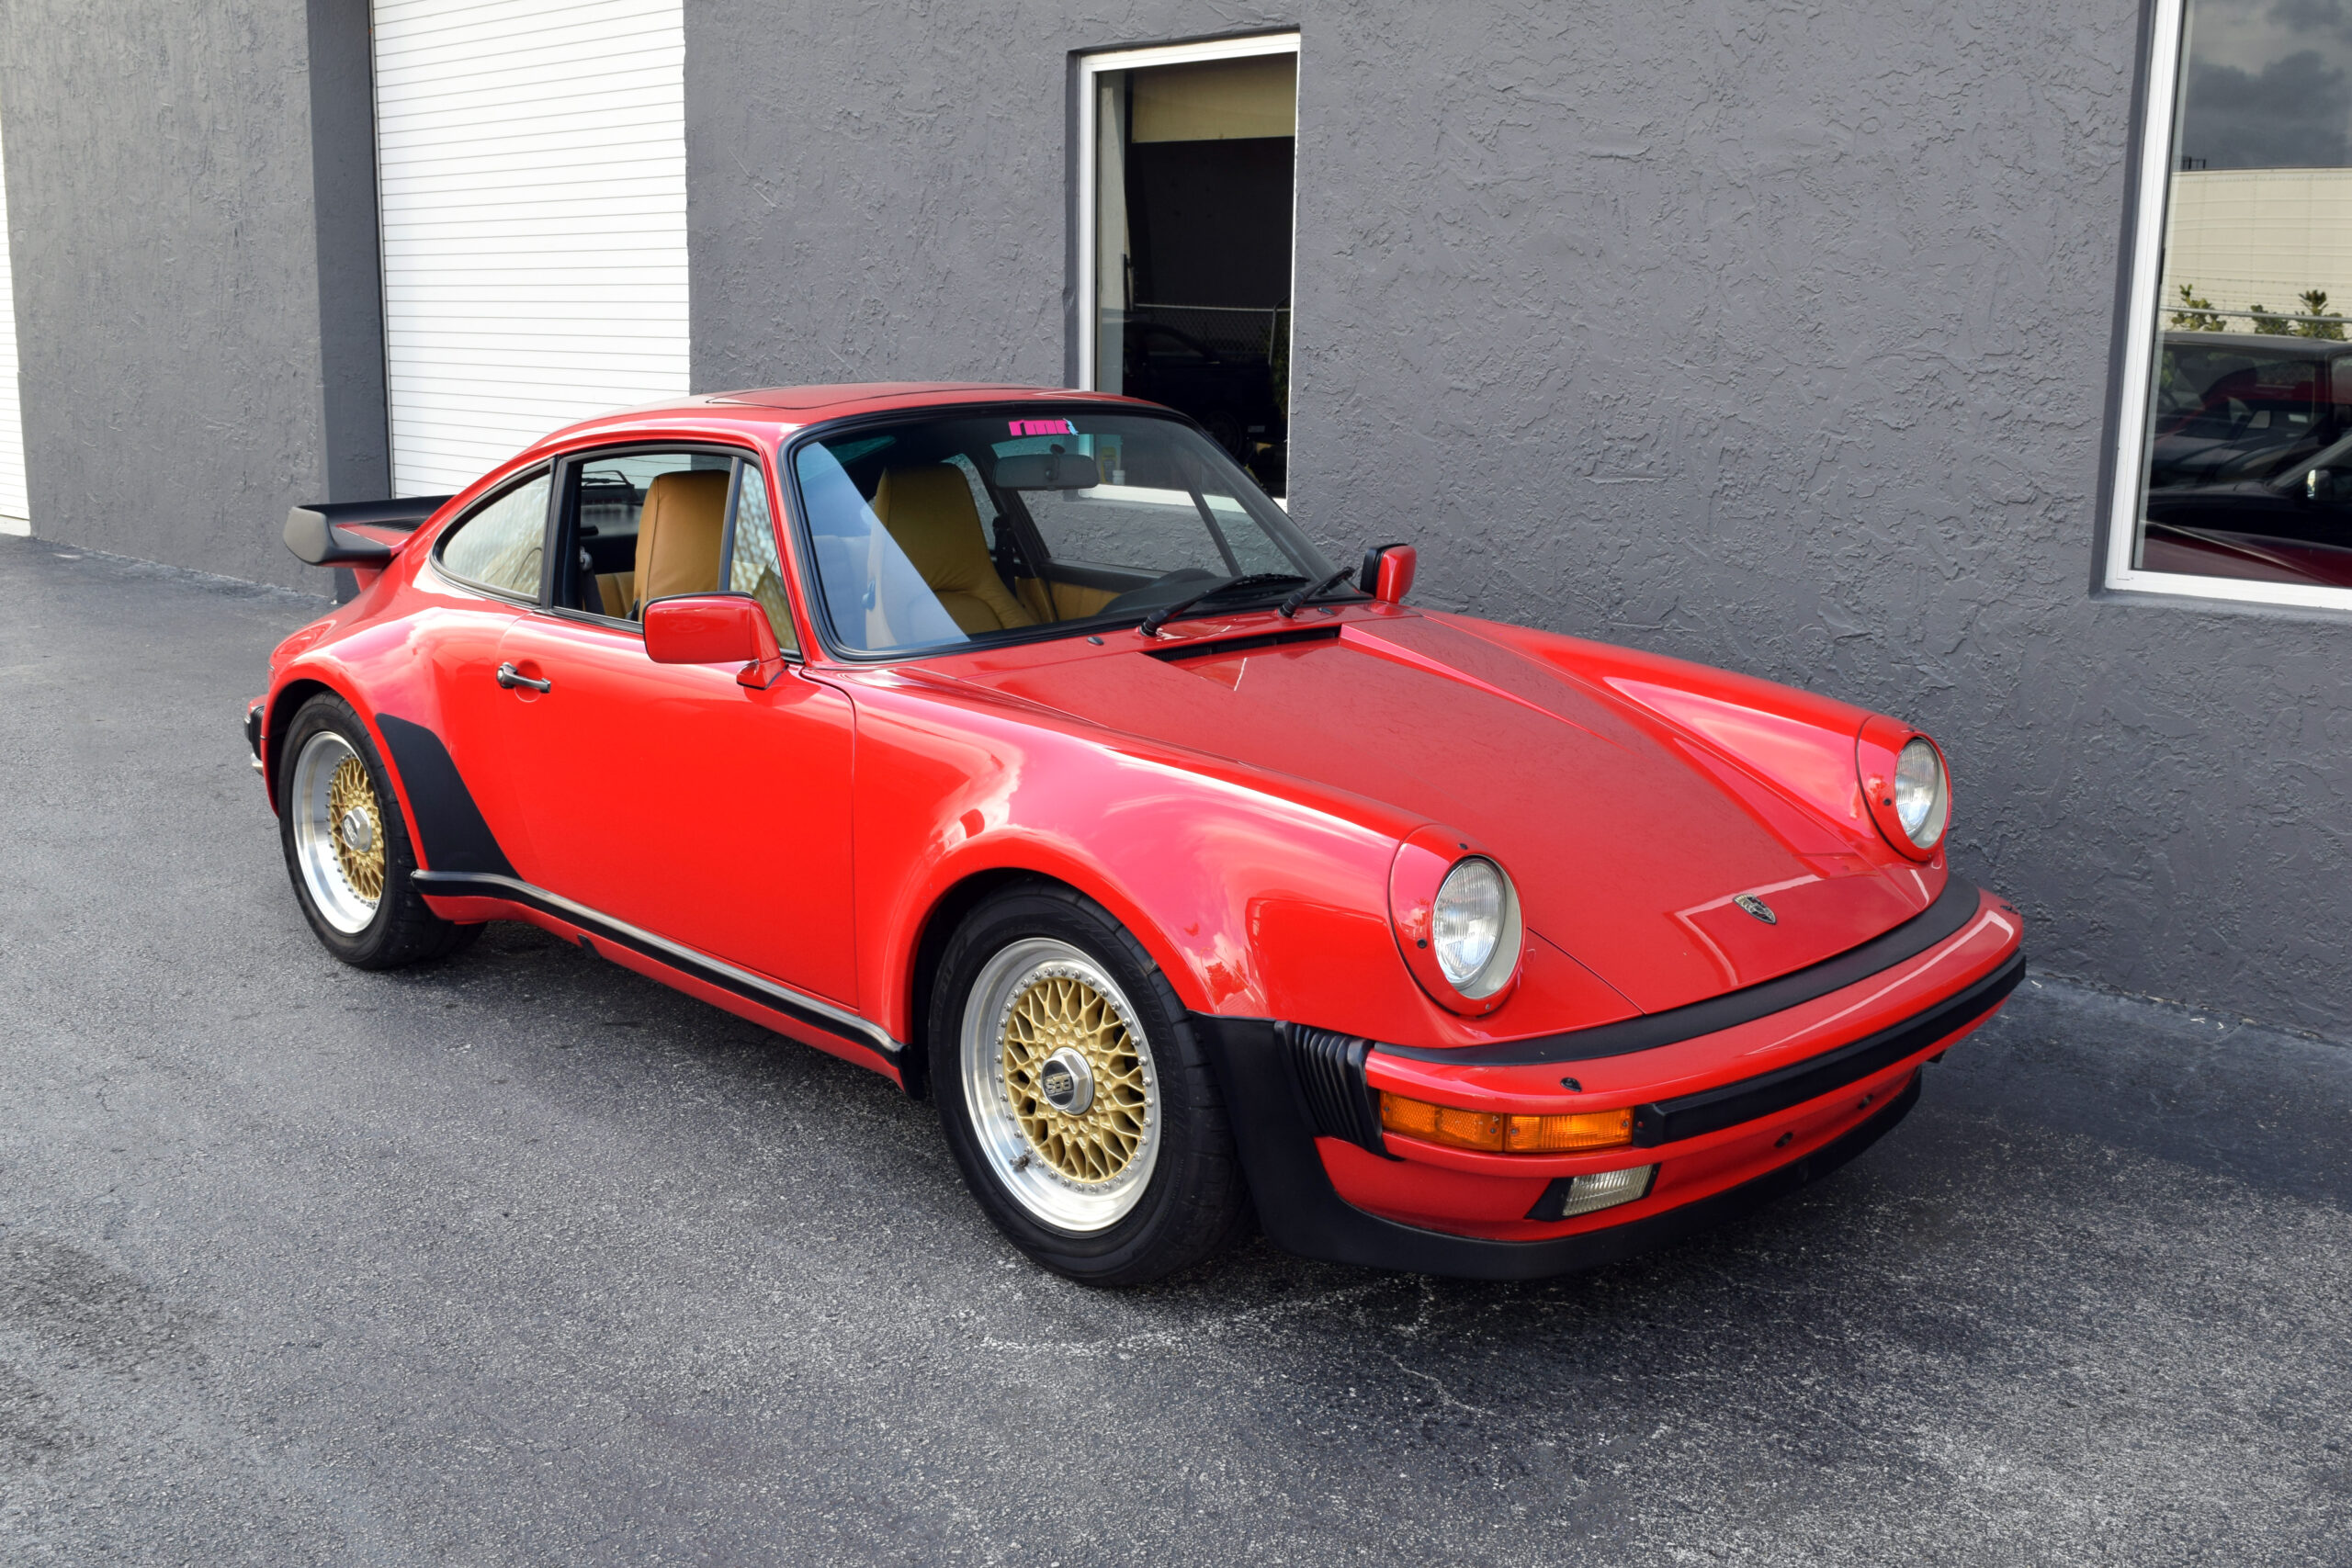 1986 Turbo 930, beautiful sports seats interior, BBS wheels, amazing condition